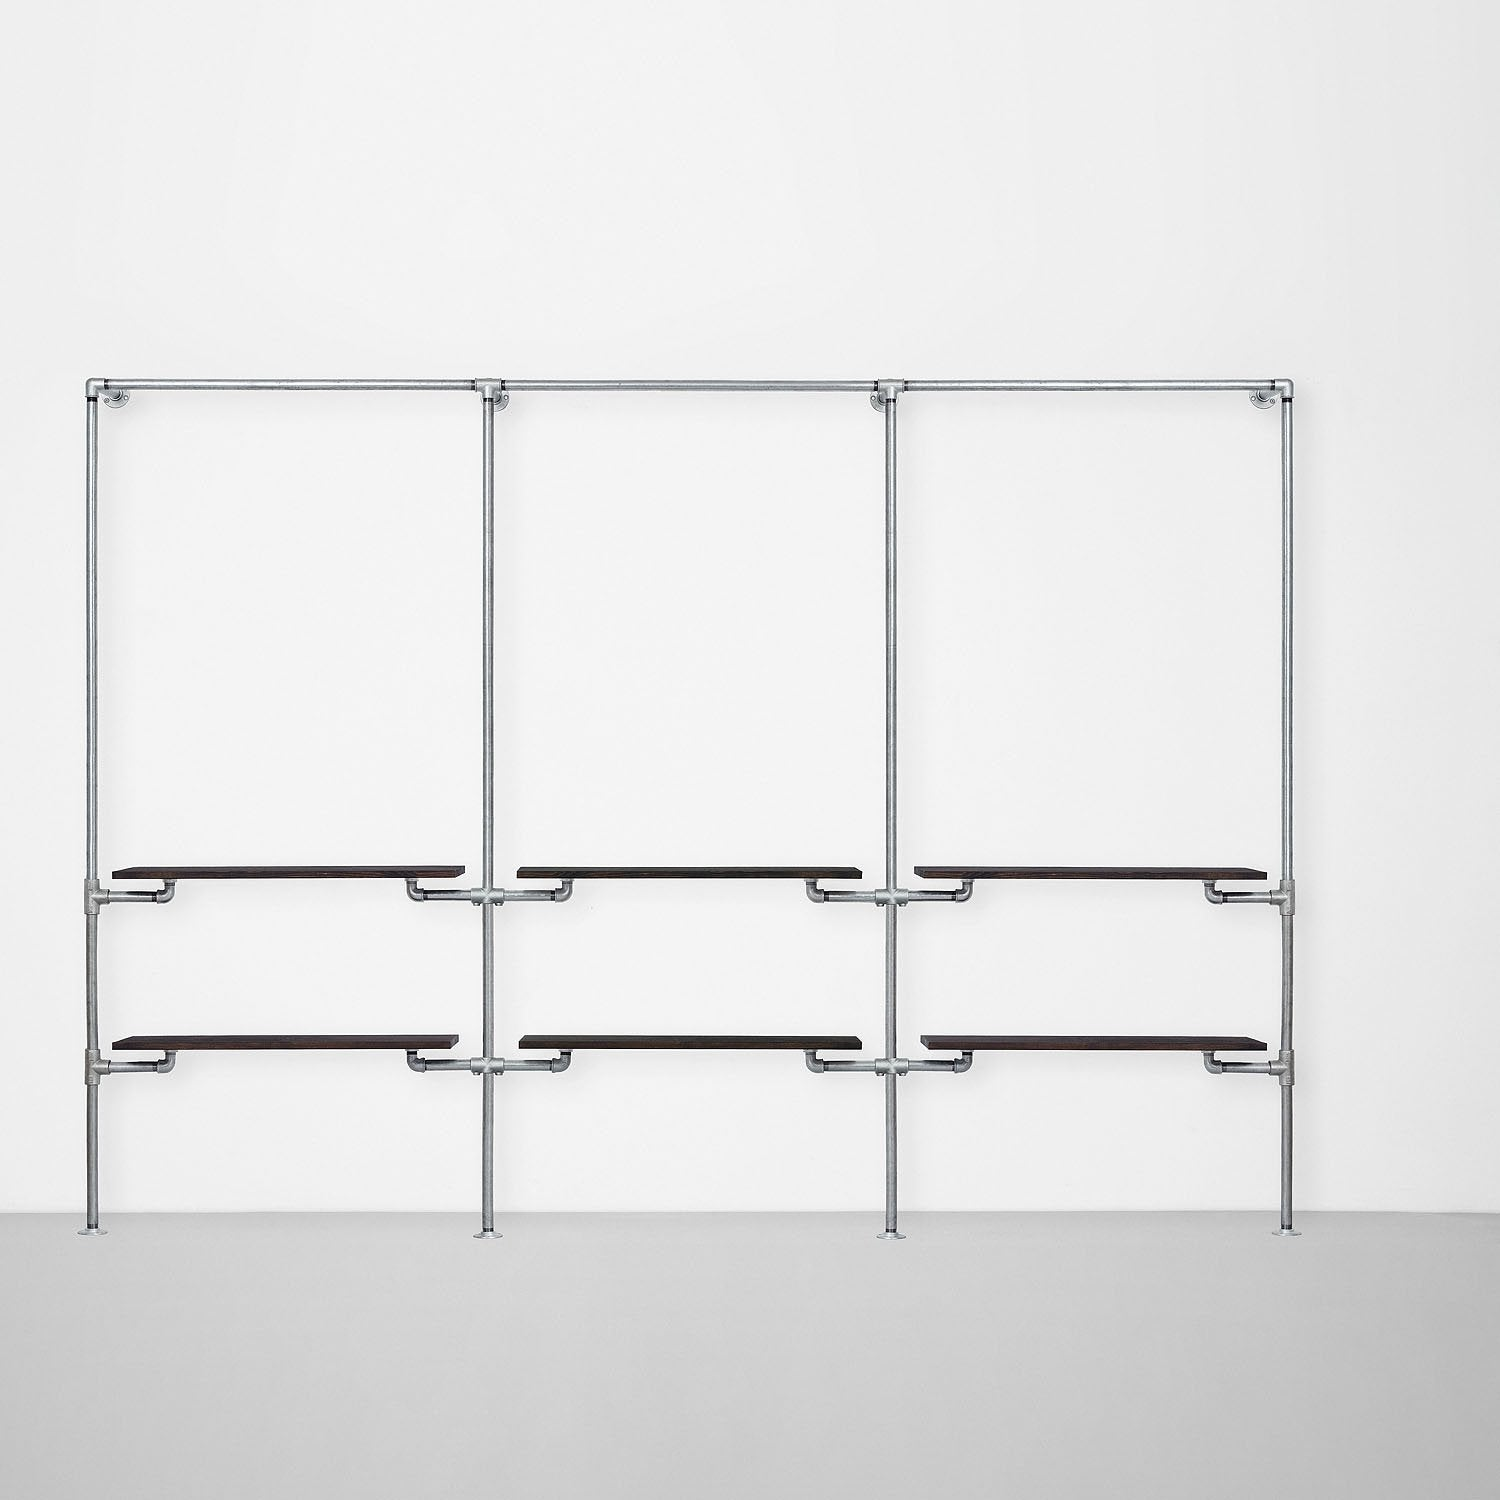 The Walk-In 3 row wardrobe system - (1 rail + 2 shelves /1 rail + 2 shelves/1 rail + 2 shelves)